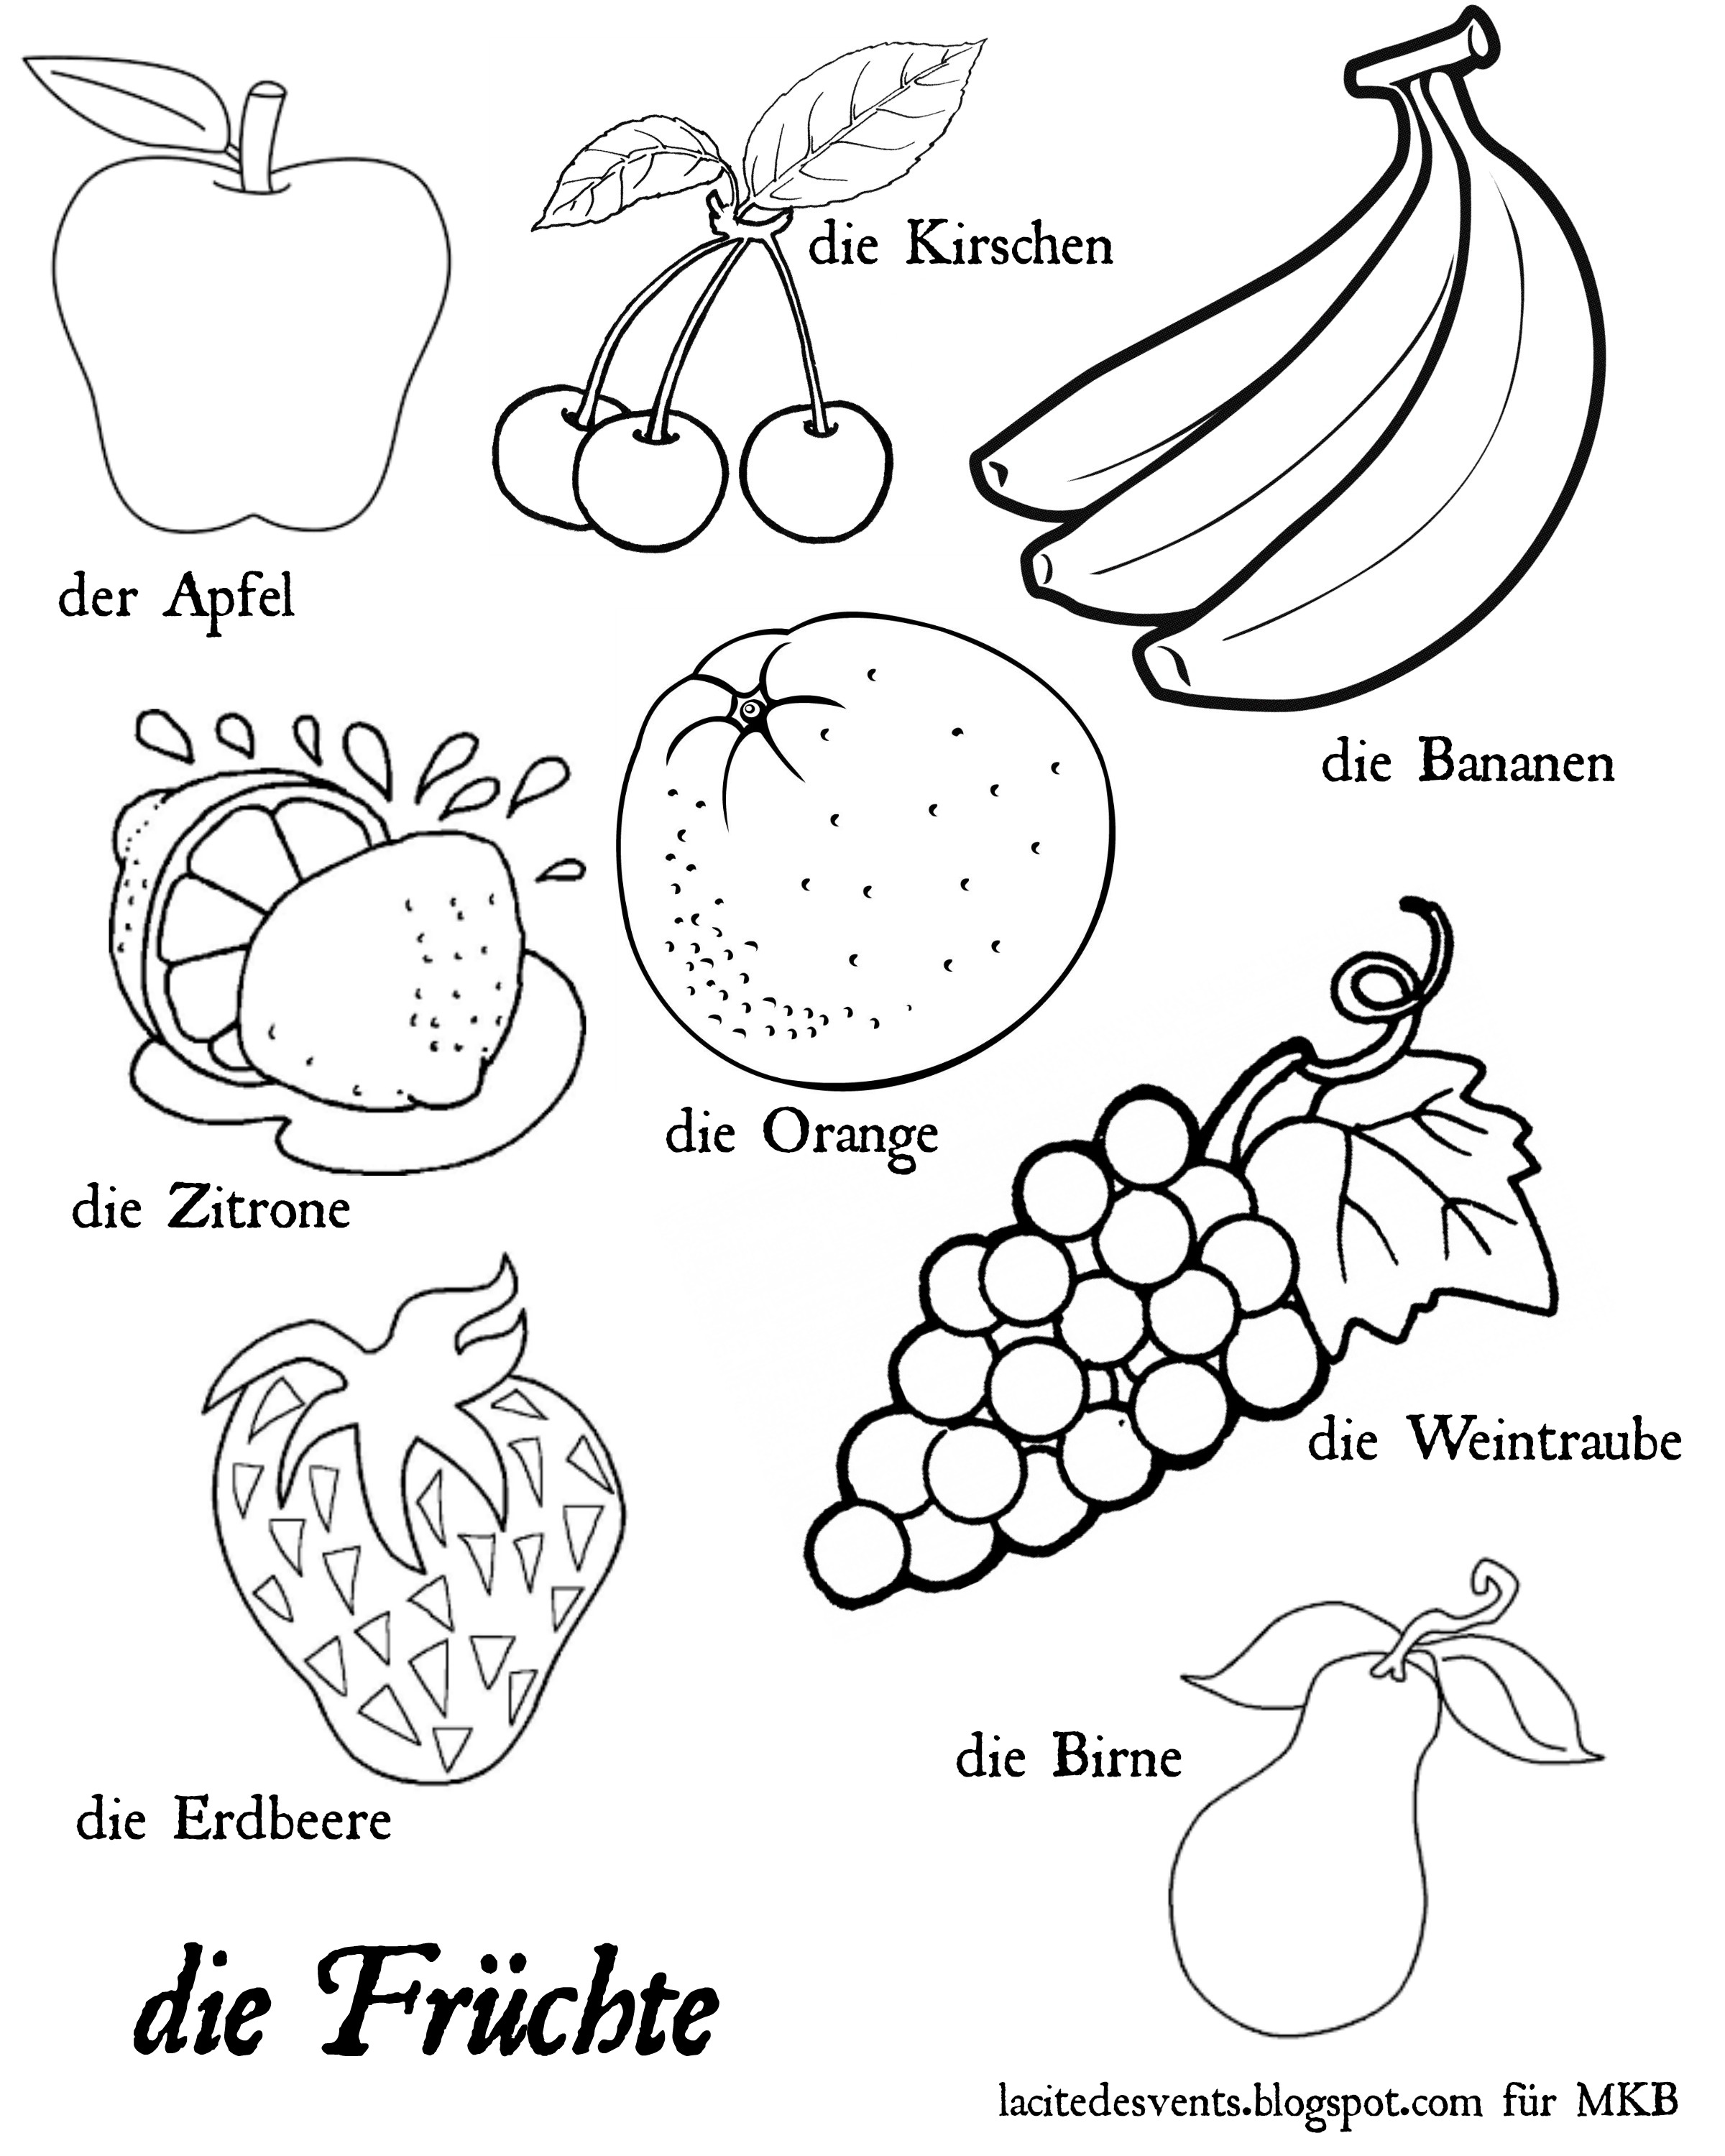 coloring fruits and vegetables images fruit coloring pages at getdrawings free download coloring vegetables fruits and images